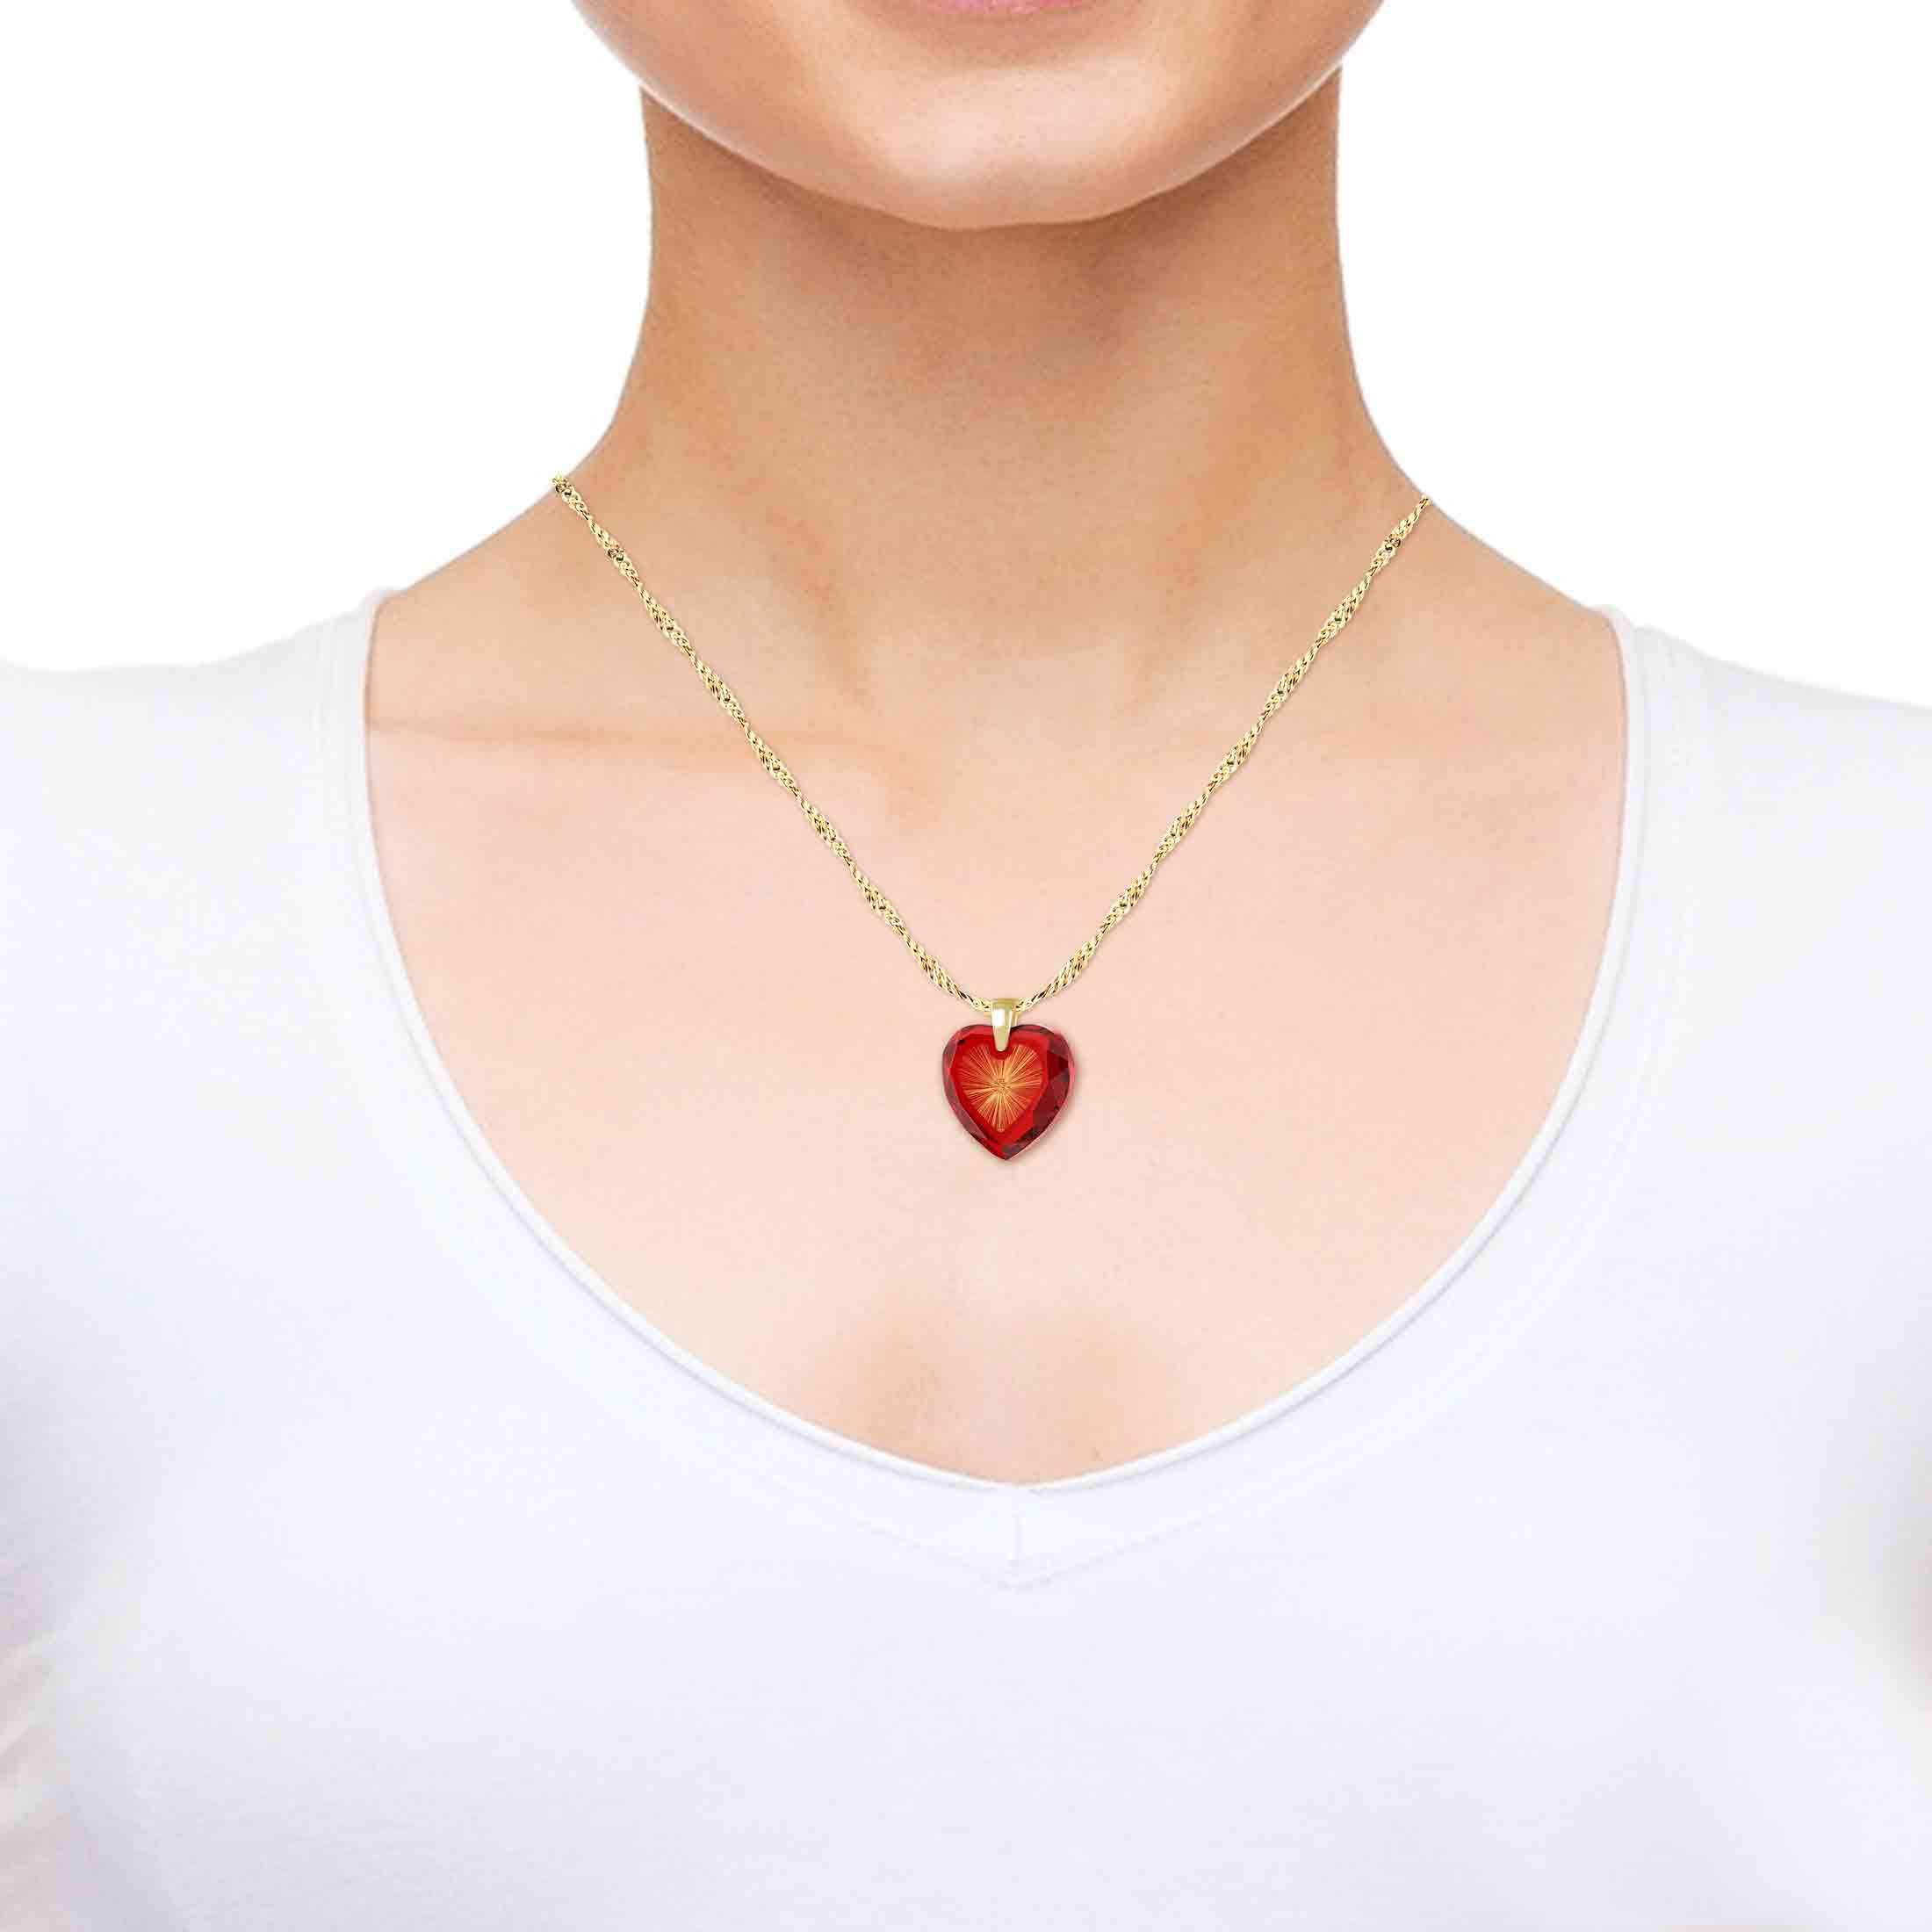 Jewish Necklaces for Her, Nano Jewelry